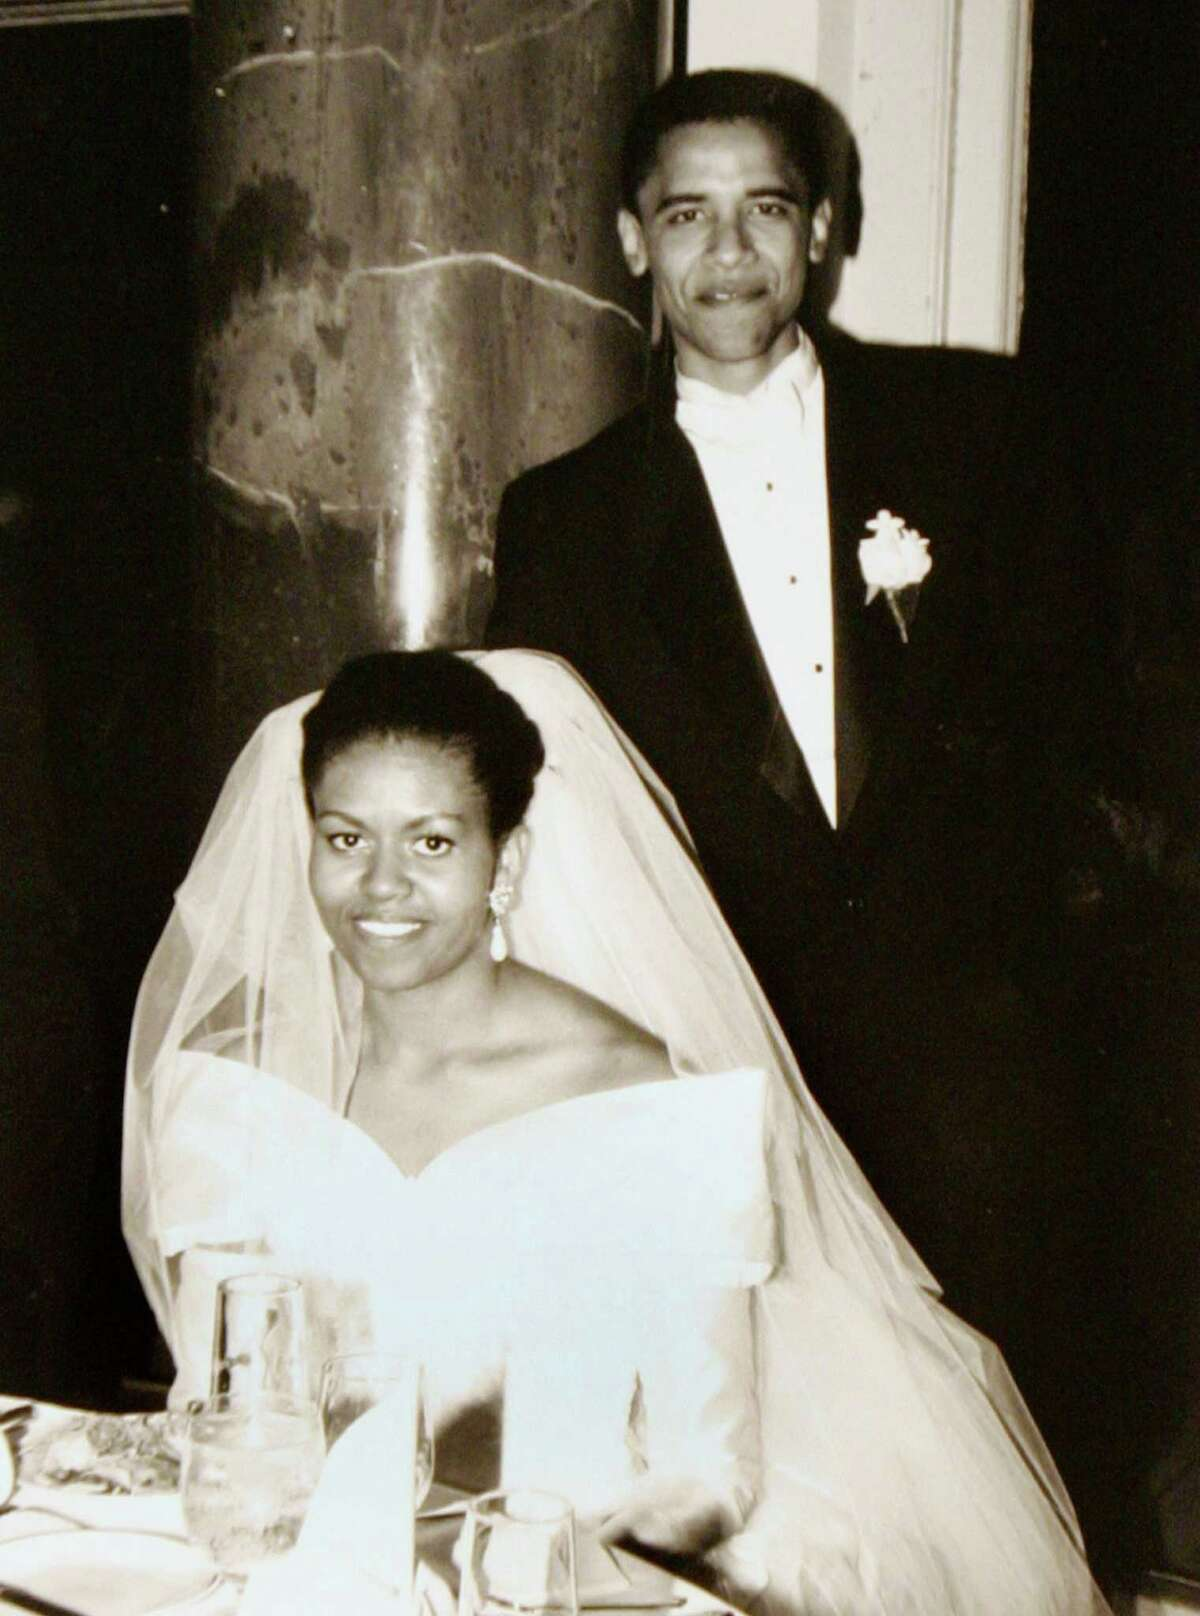 Barack Obama has been married to Michelle Obama since 1992. AP / Obama campaign